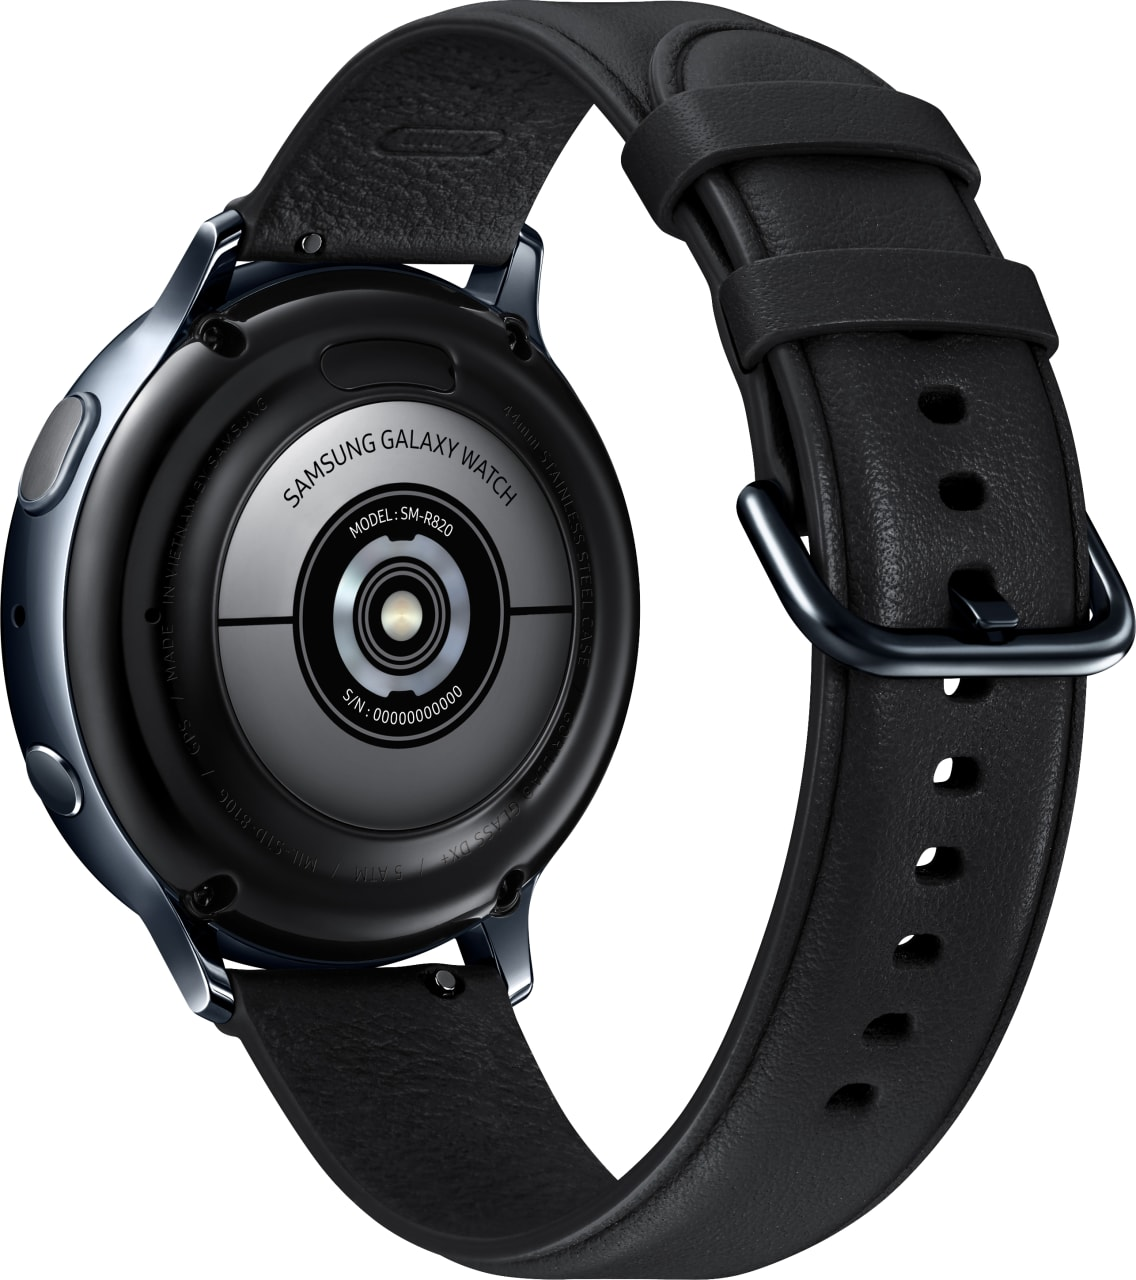 Black Samsung Galaxy Watch Active2, 44mm Stainless steel case, Leather band.3